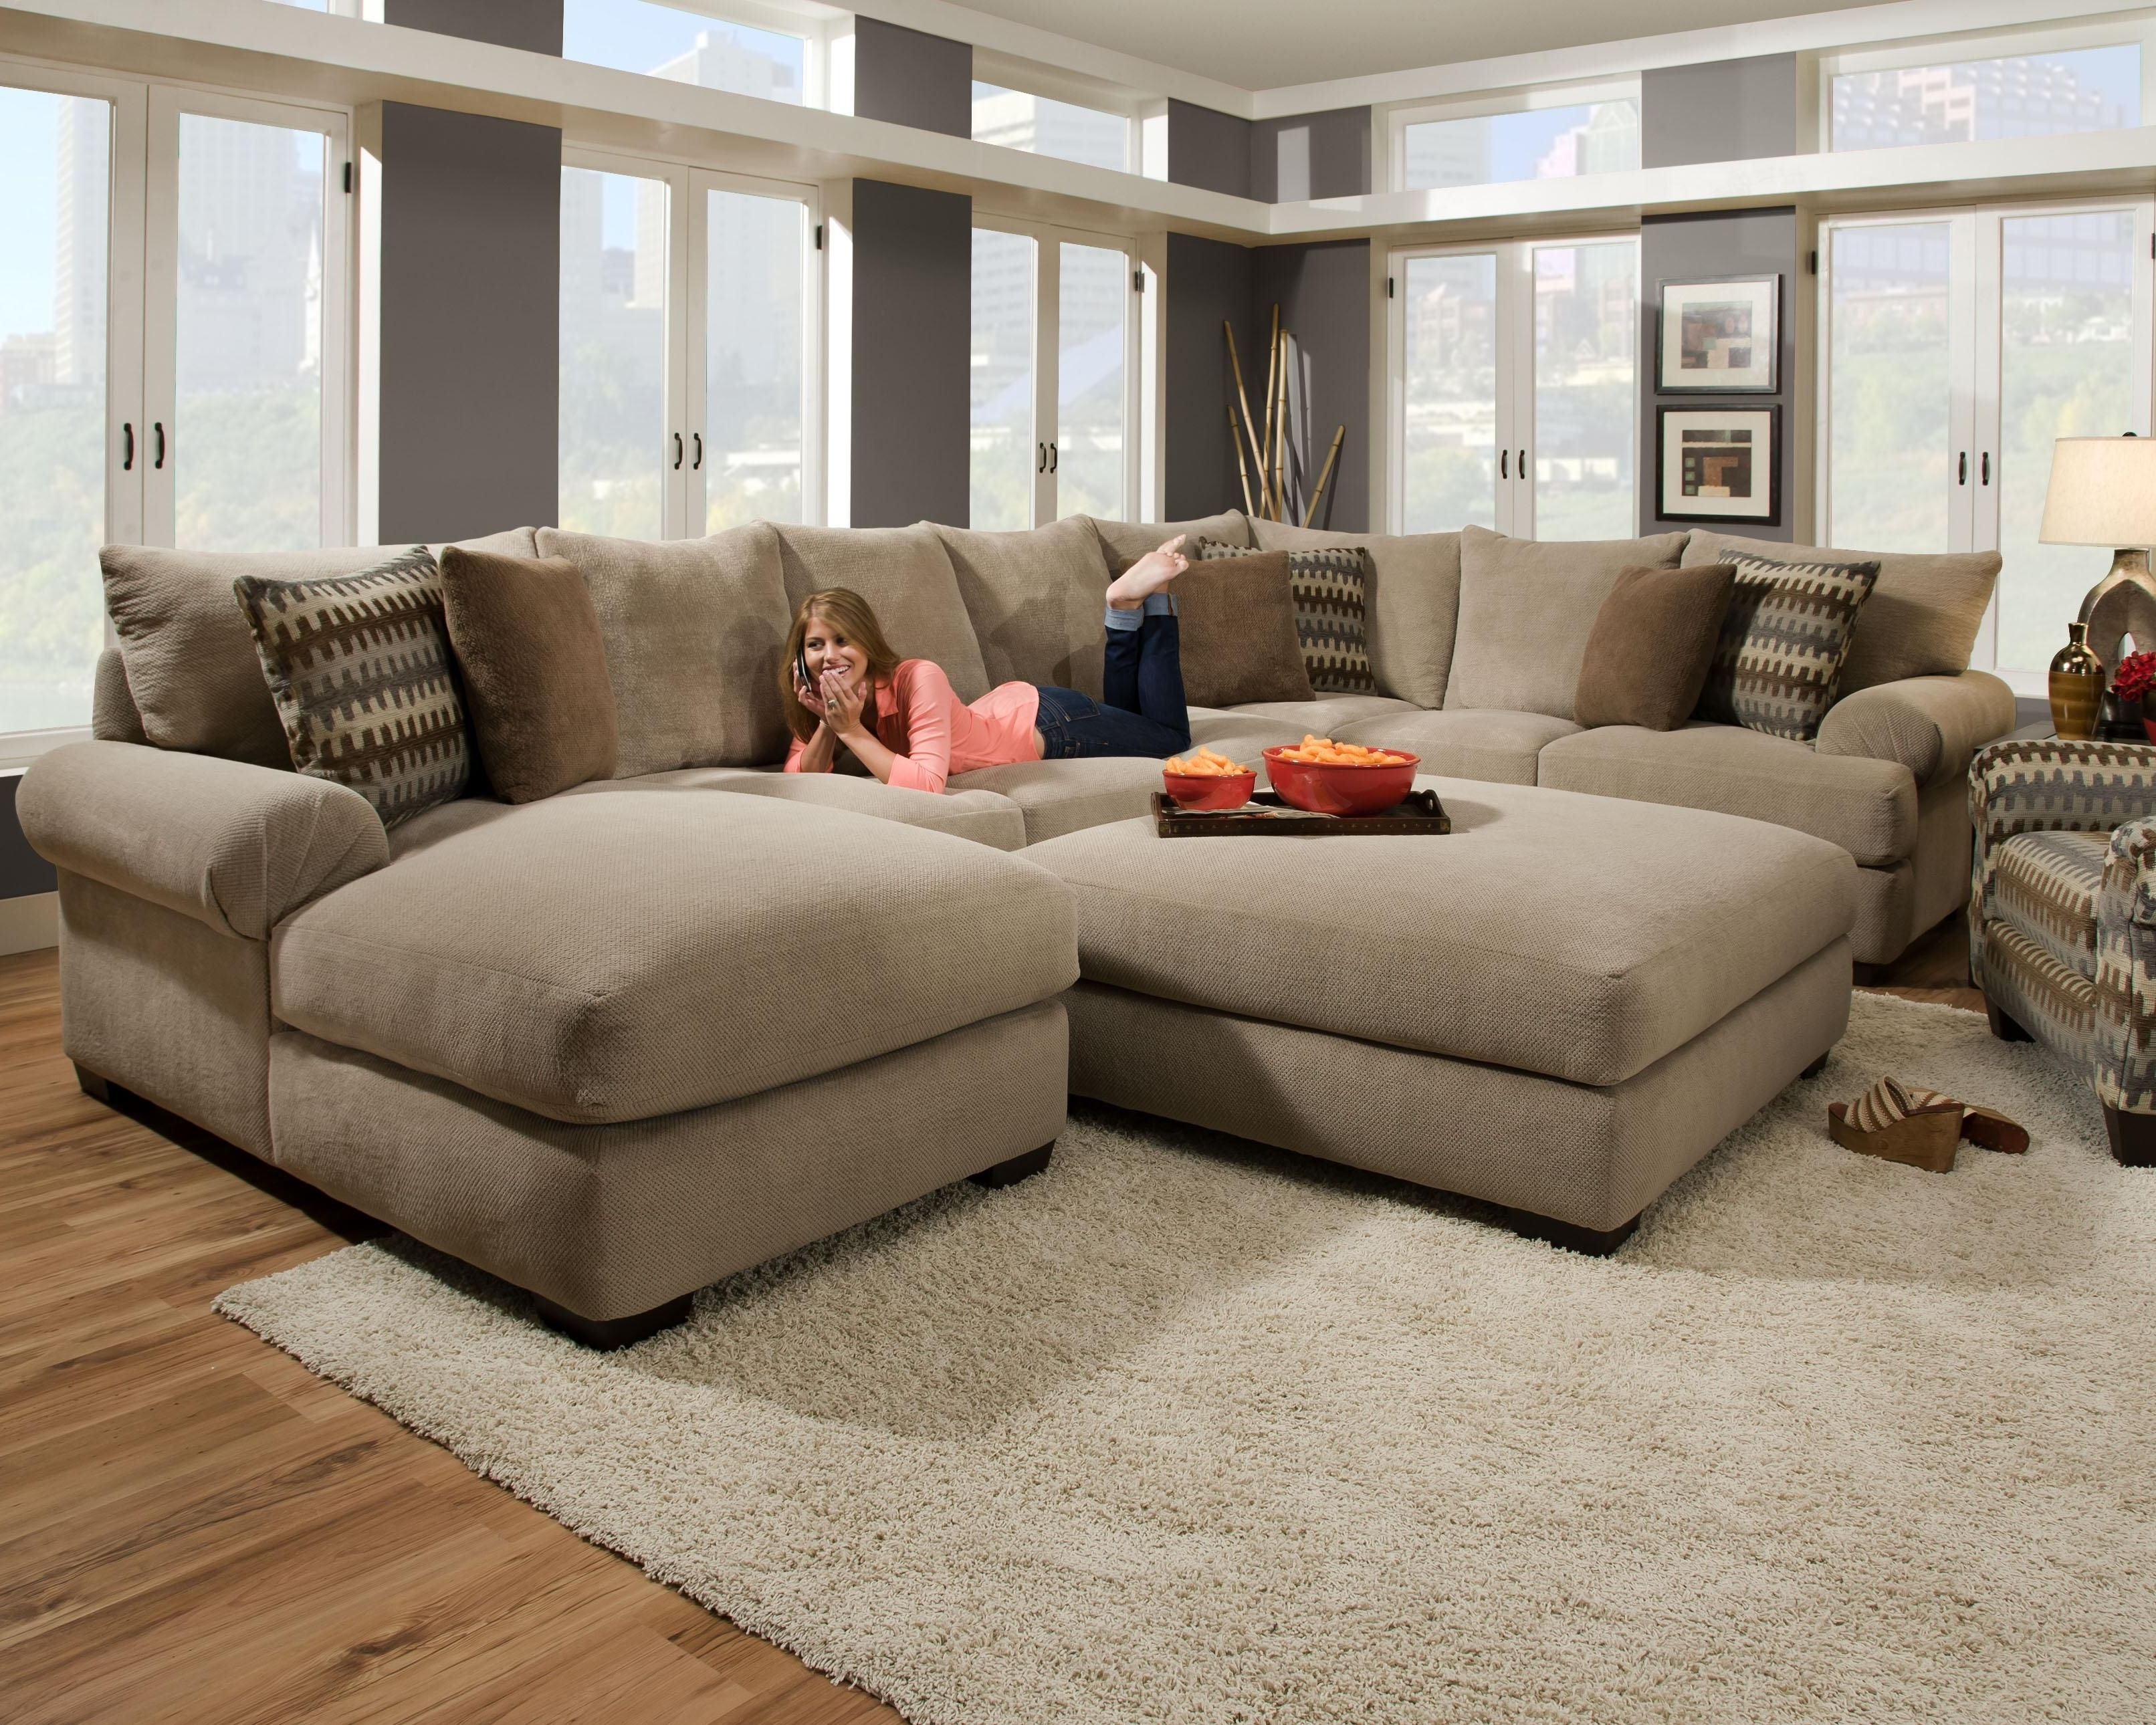 Popular Big U Shaped Couches Intended For Furniture Design Idea For Living Room And Oversized U Shaped (View 10 of 15)